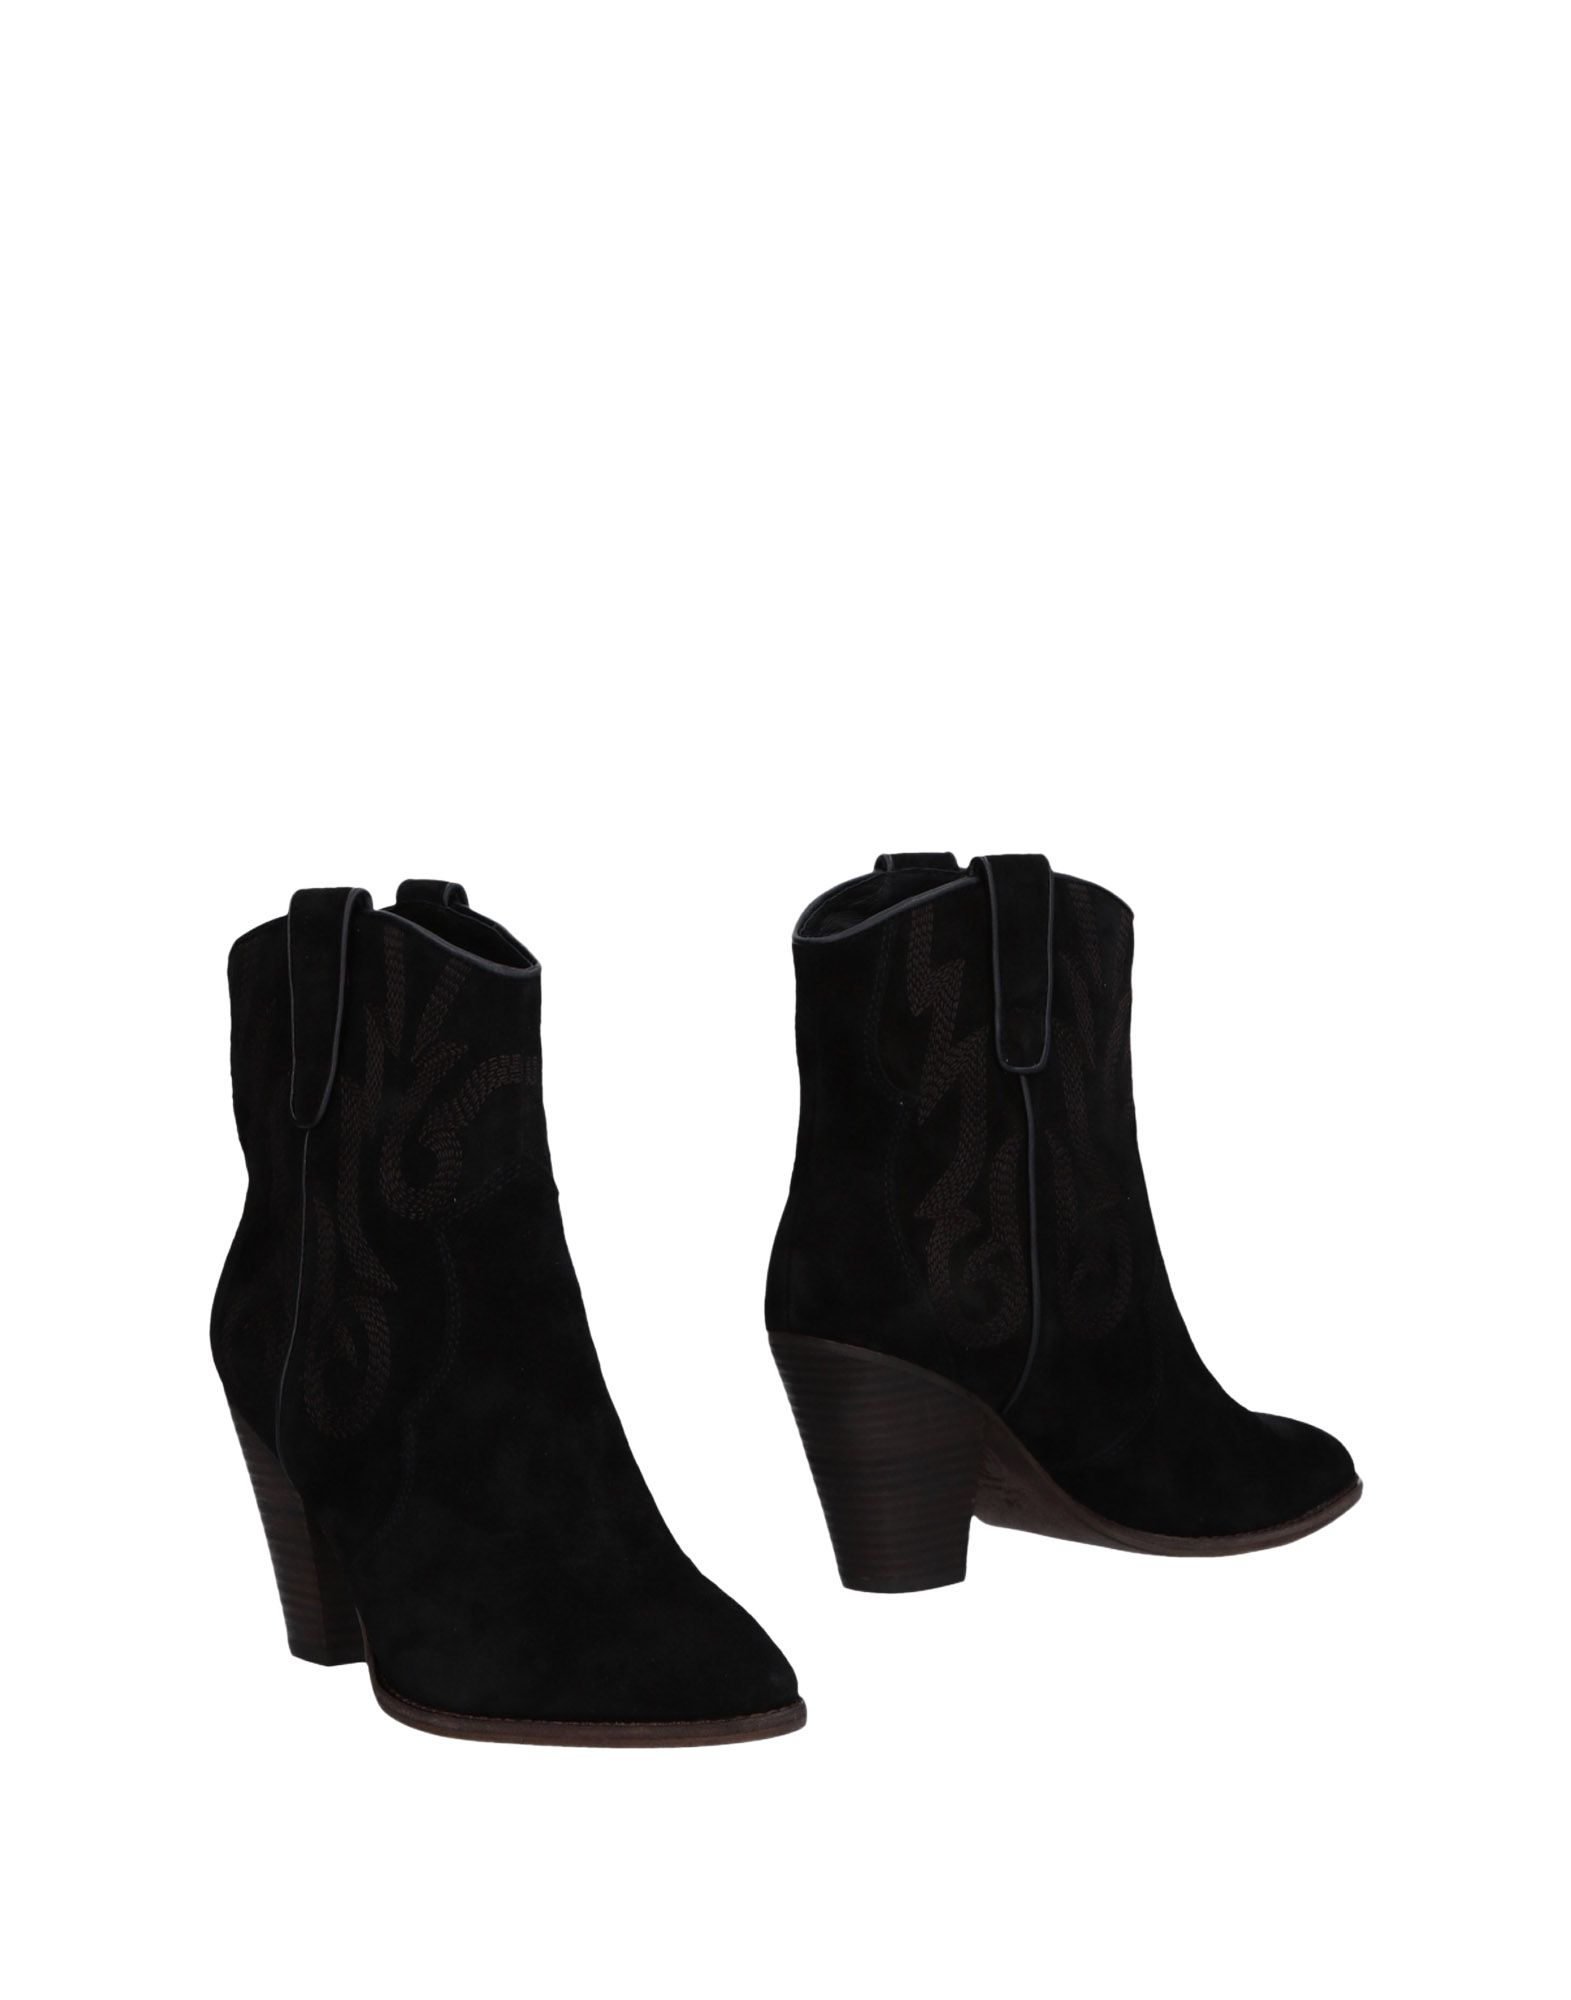 Ash Ankle Boot - Women Ash Ankle Boots Boots Ankle online on  United Kingdom - 11481876KK 90bc5b